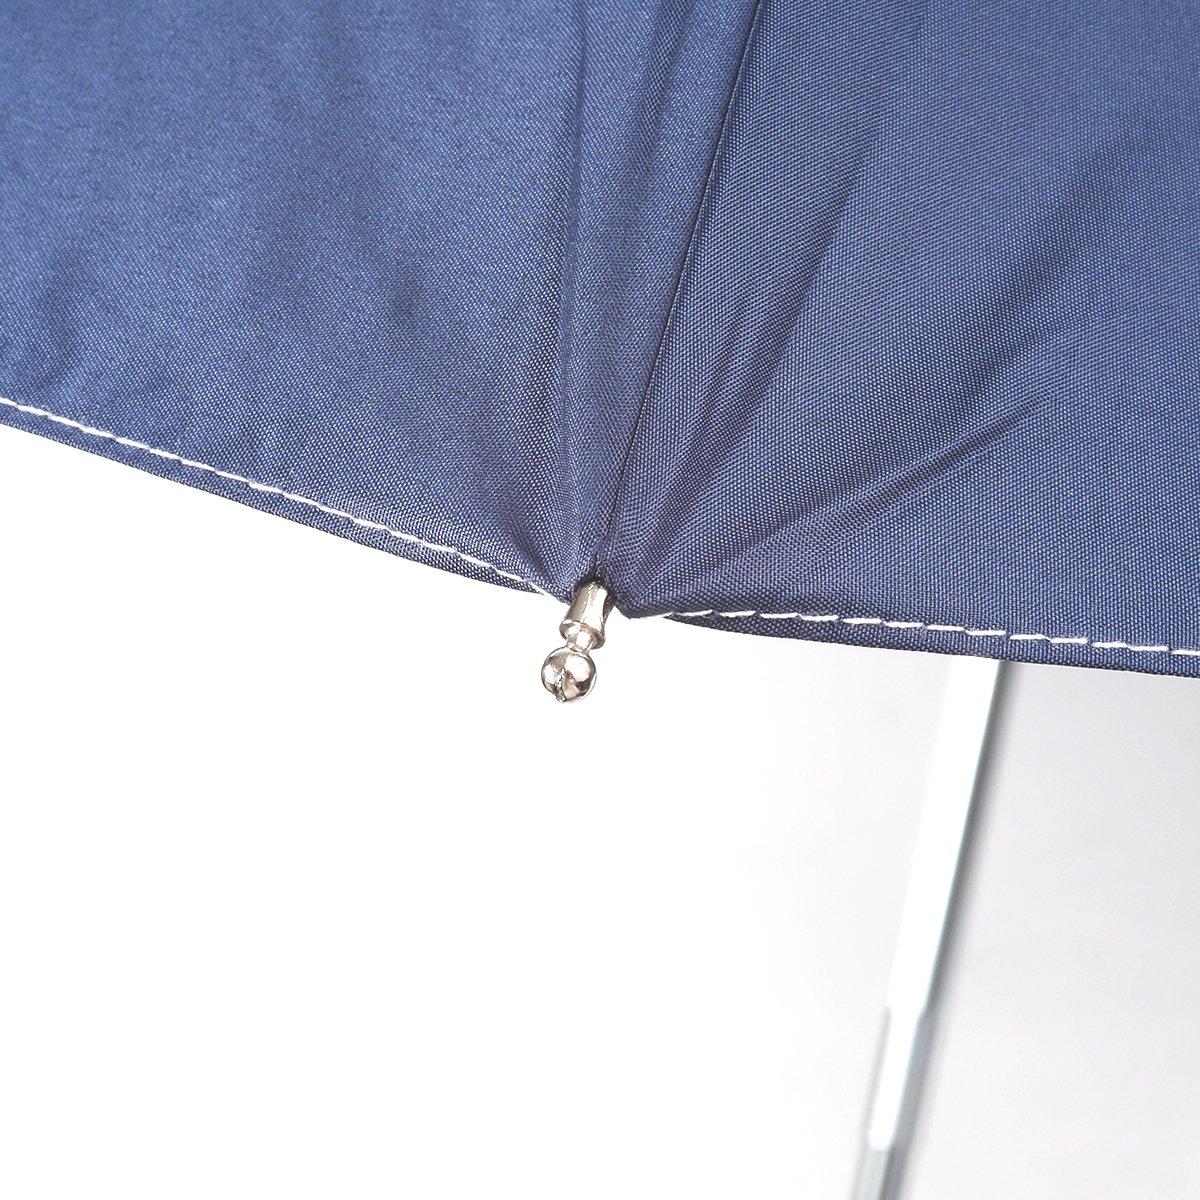 588K UV AUTOMATIC FOLDING UMBRELLA 詳細画像6